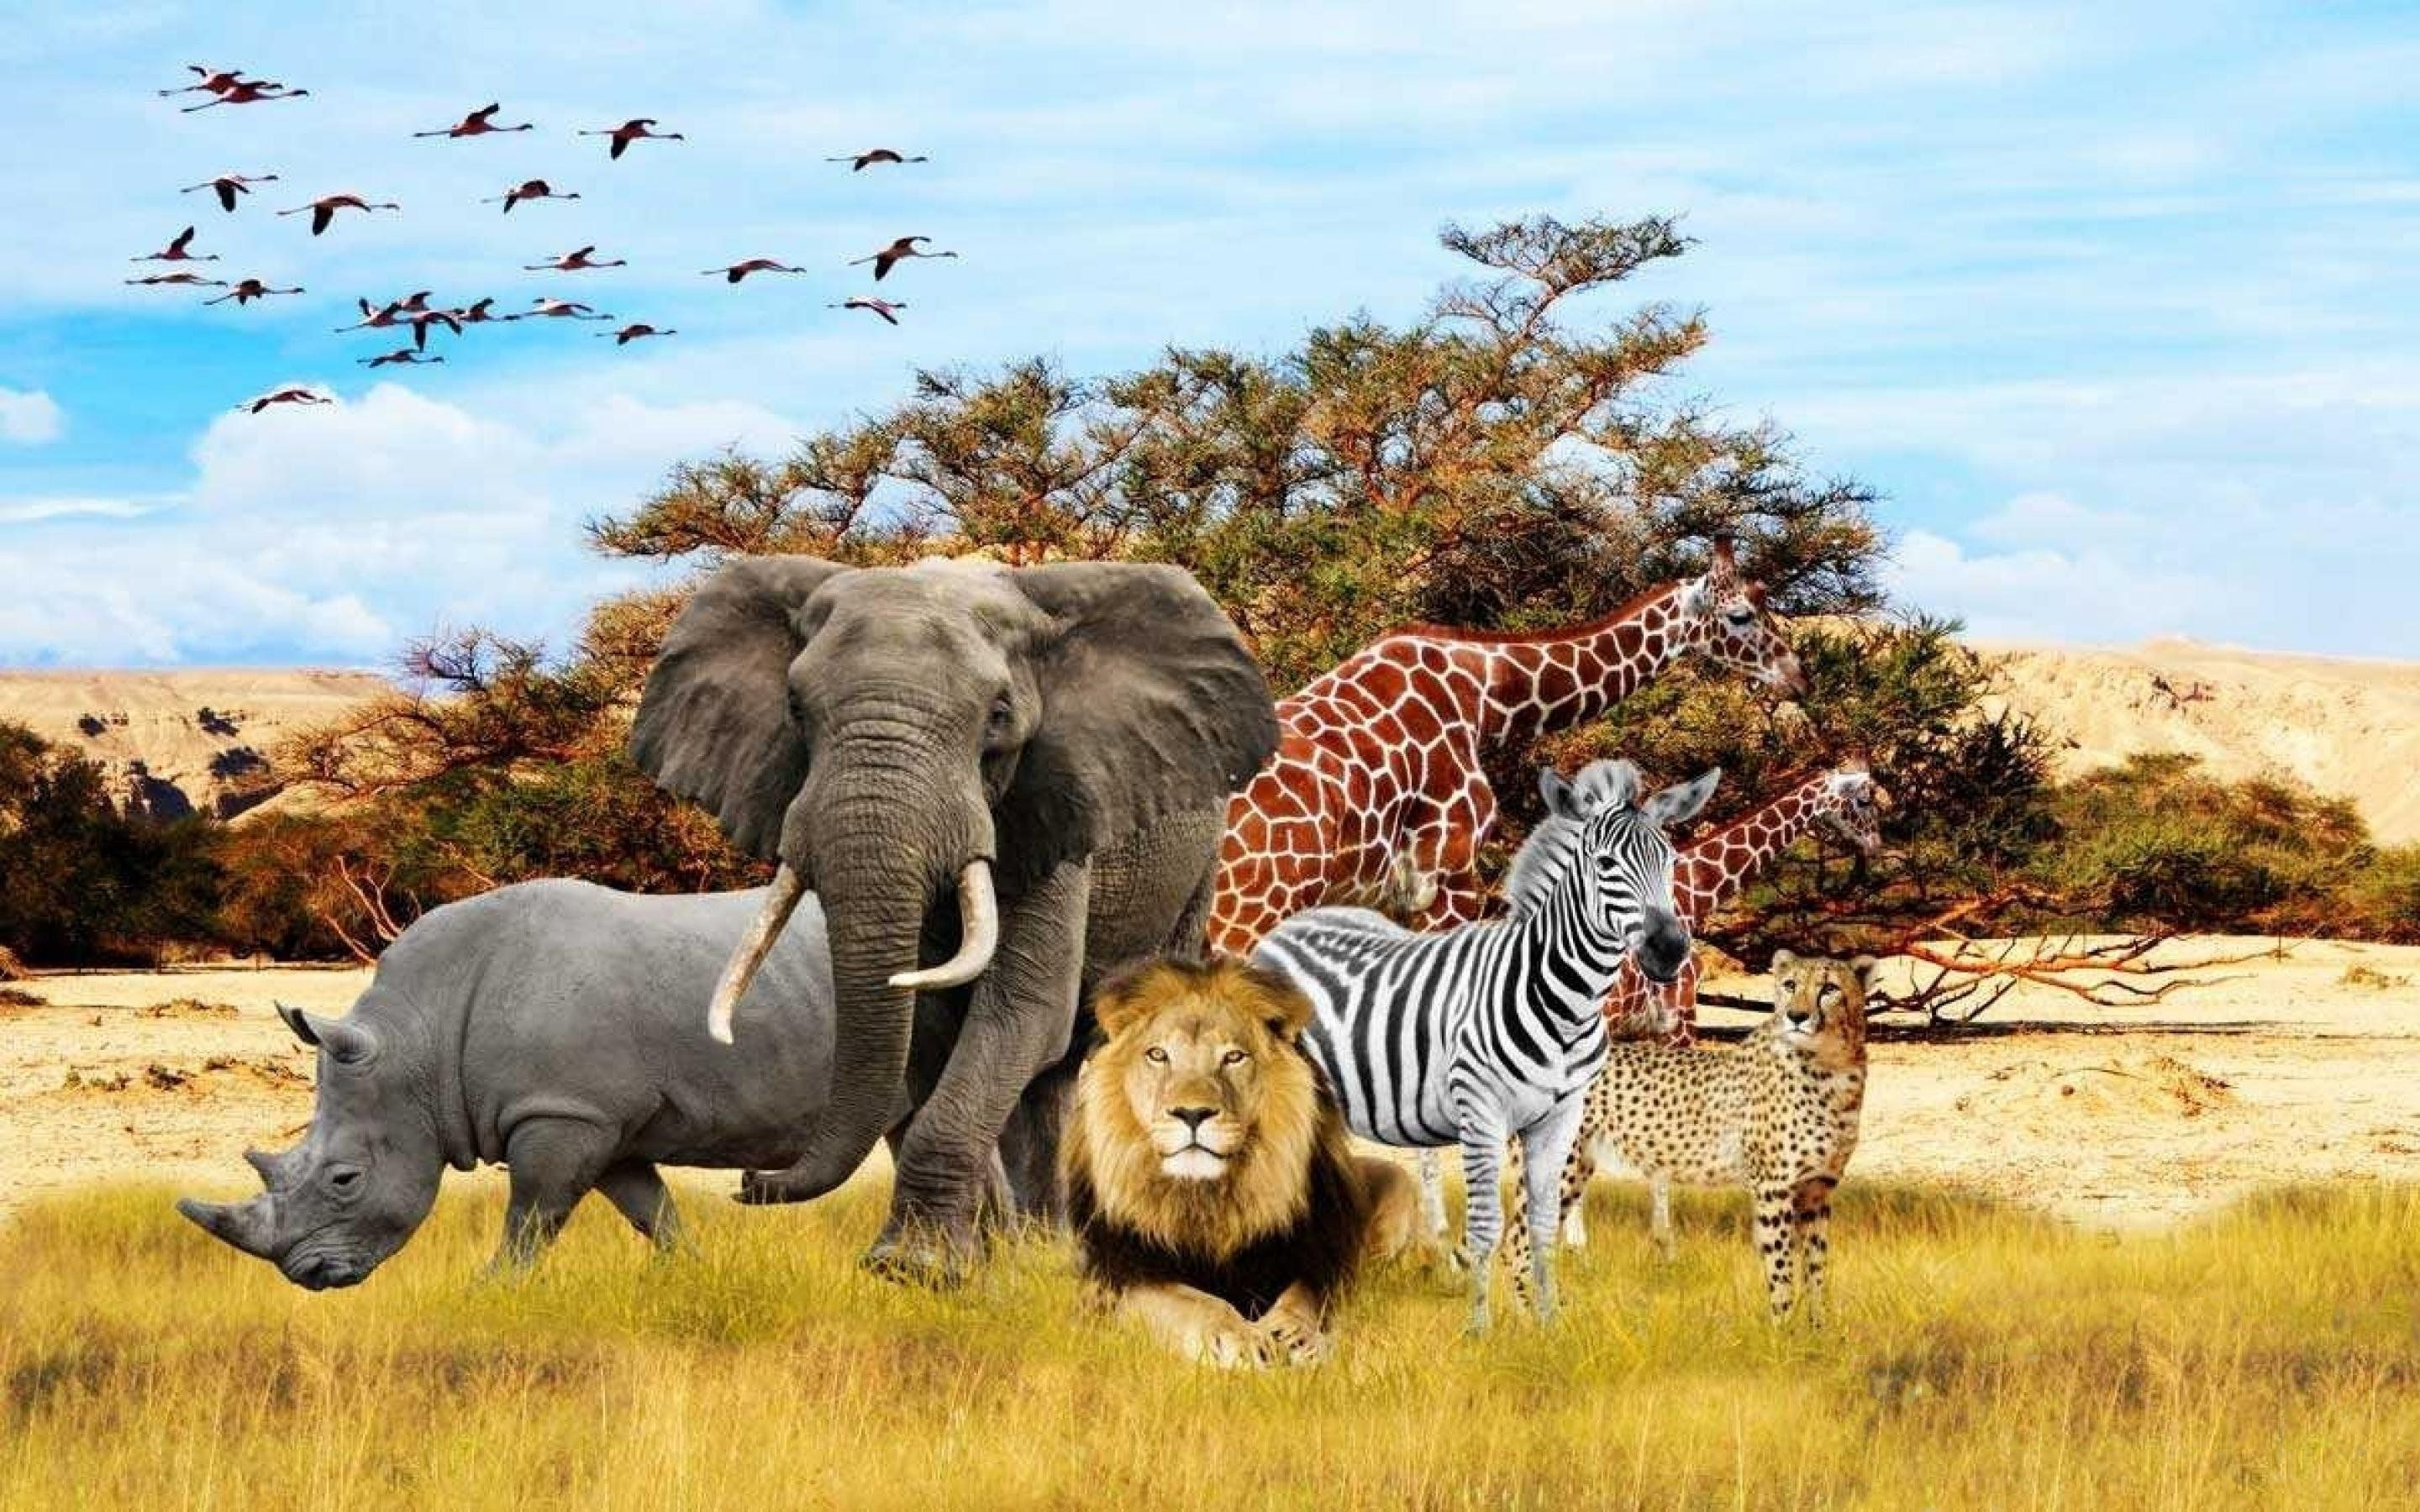 African Animals Wallpapers   Top African Animals Backgrounds 2880x1800